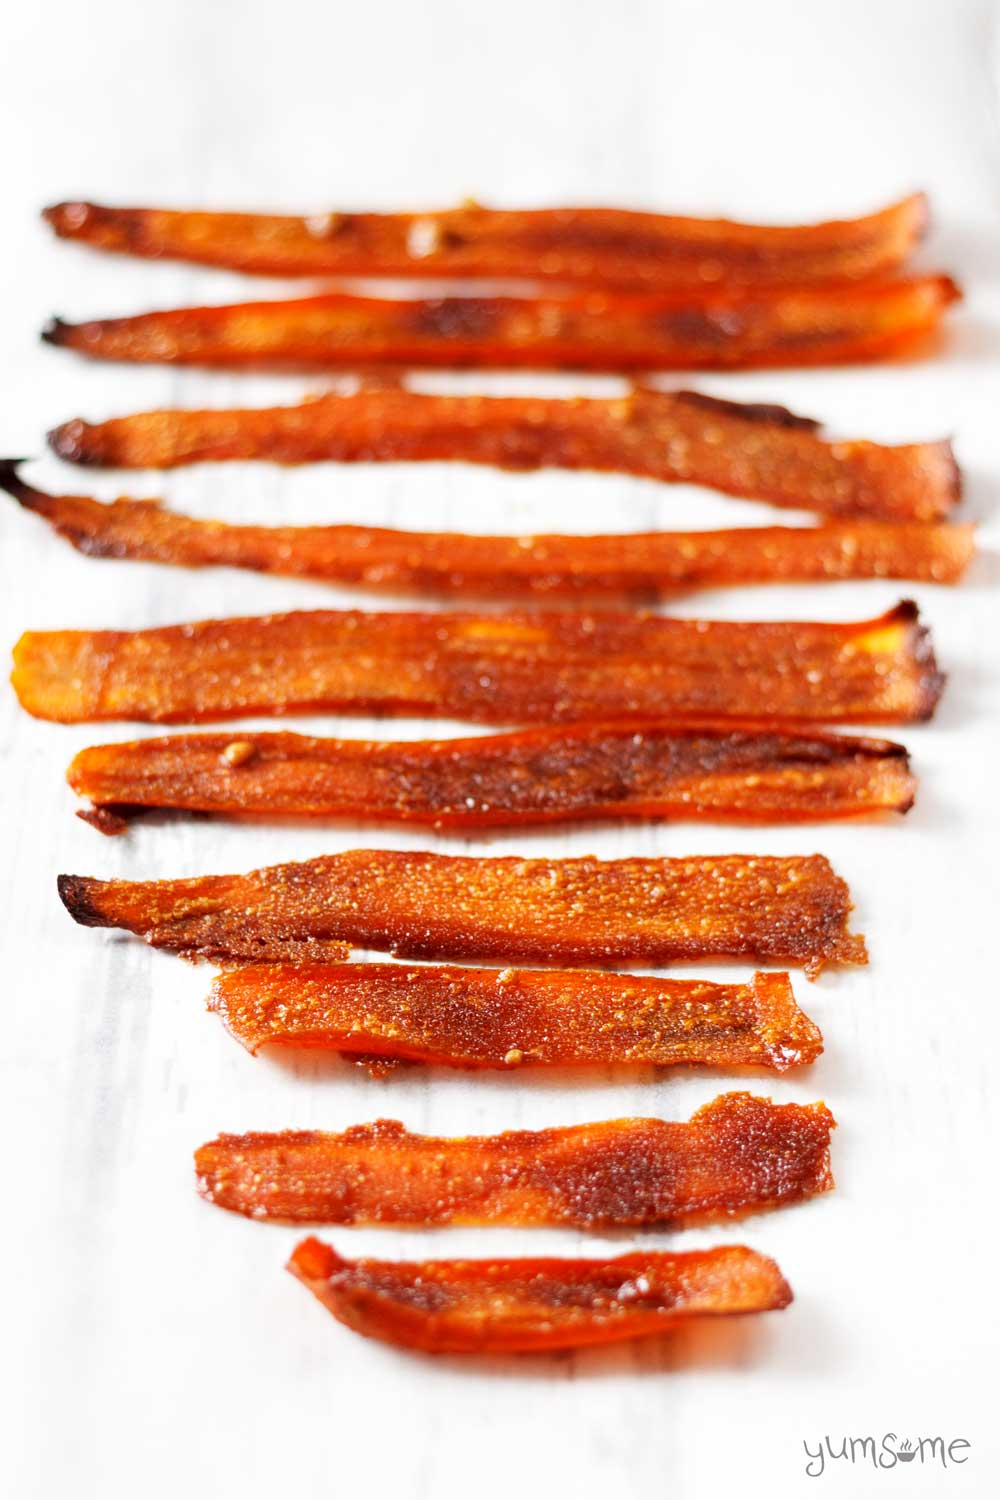 carrot-bacon-yum-2